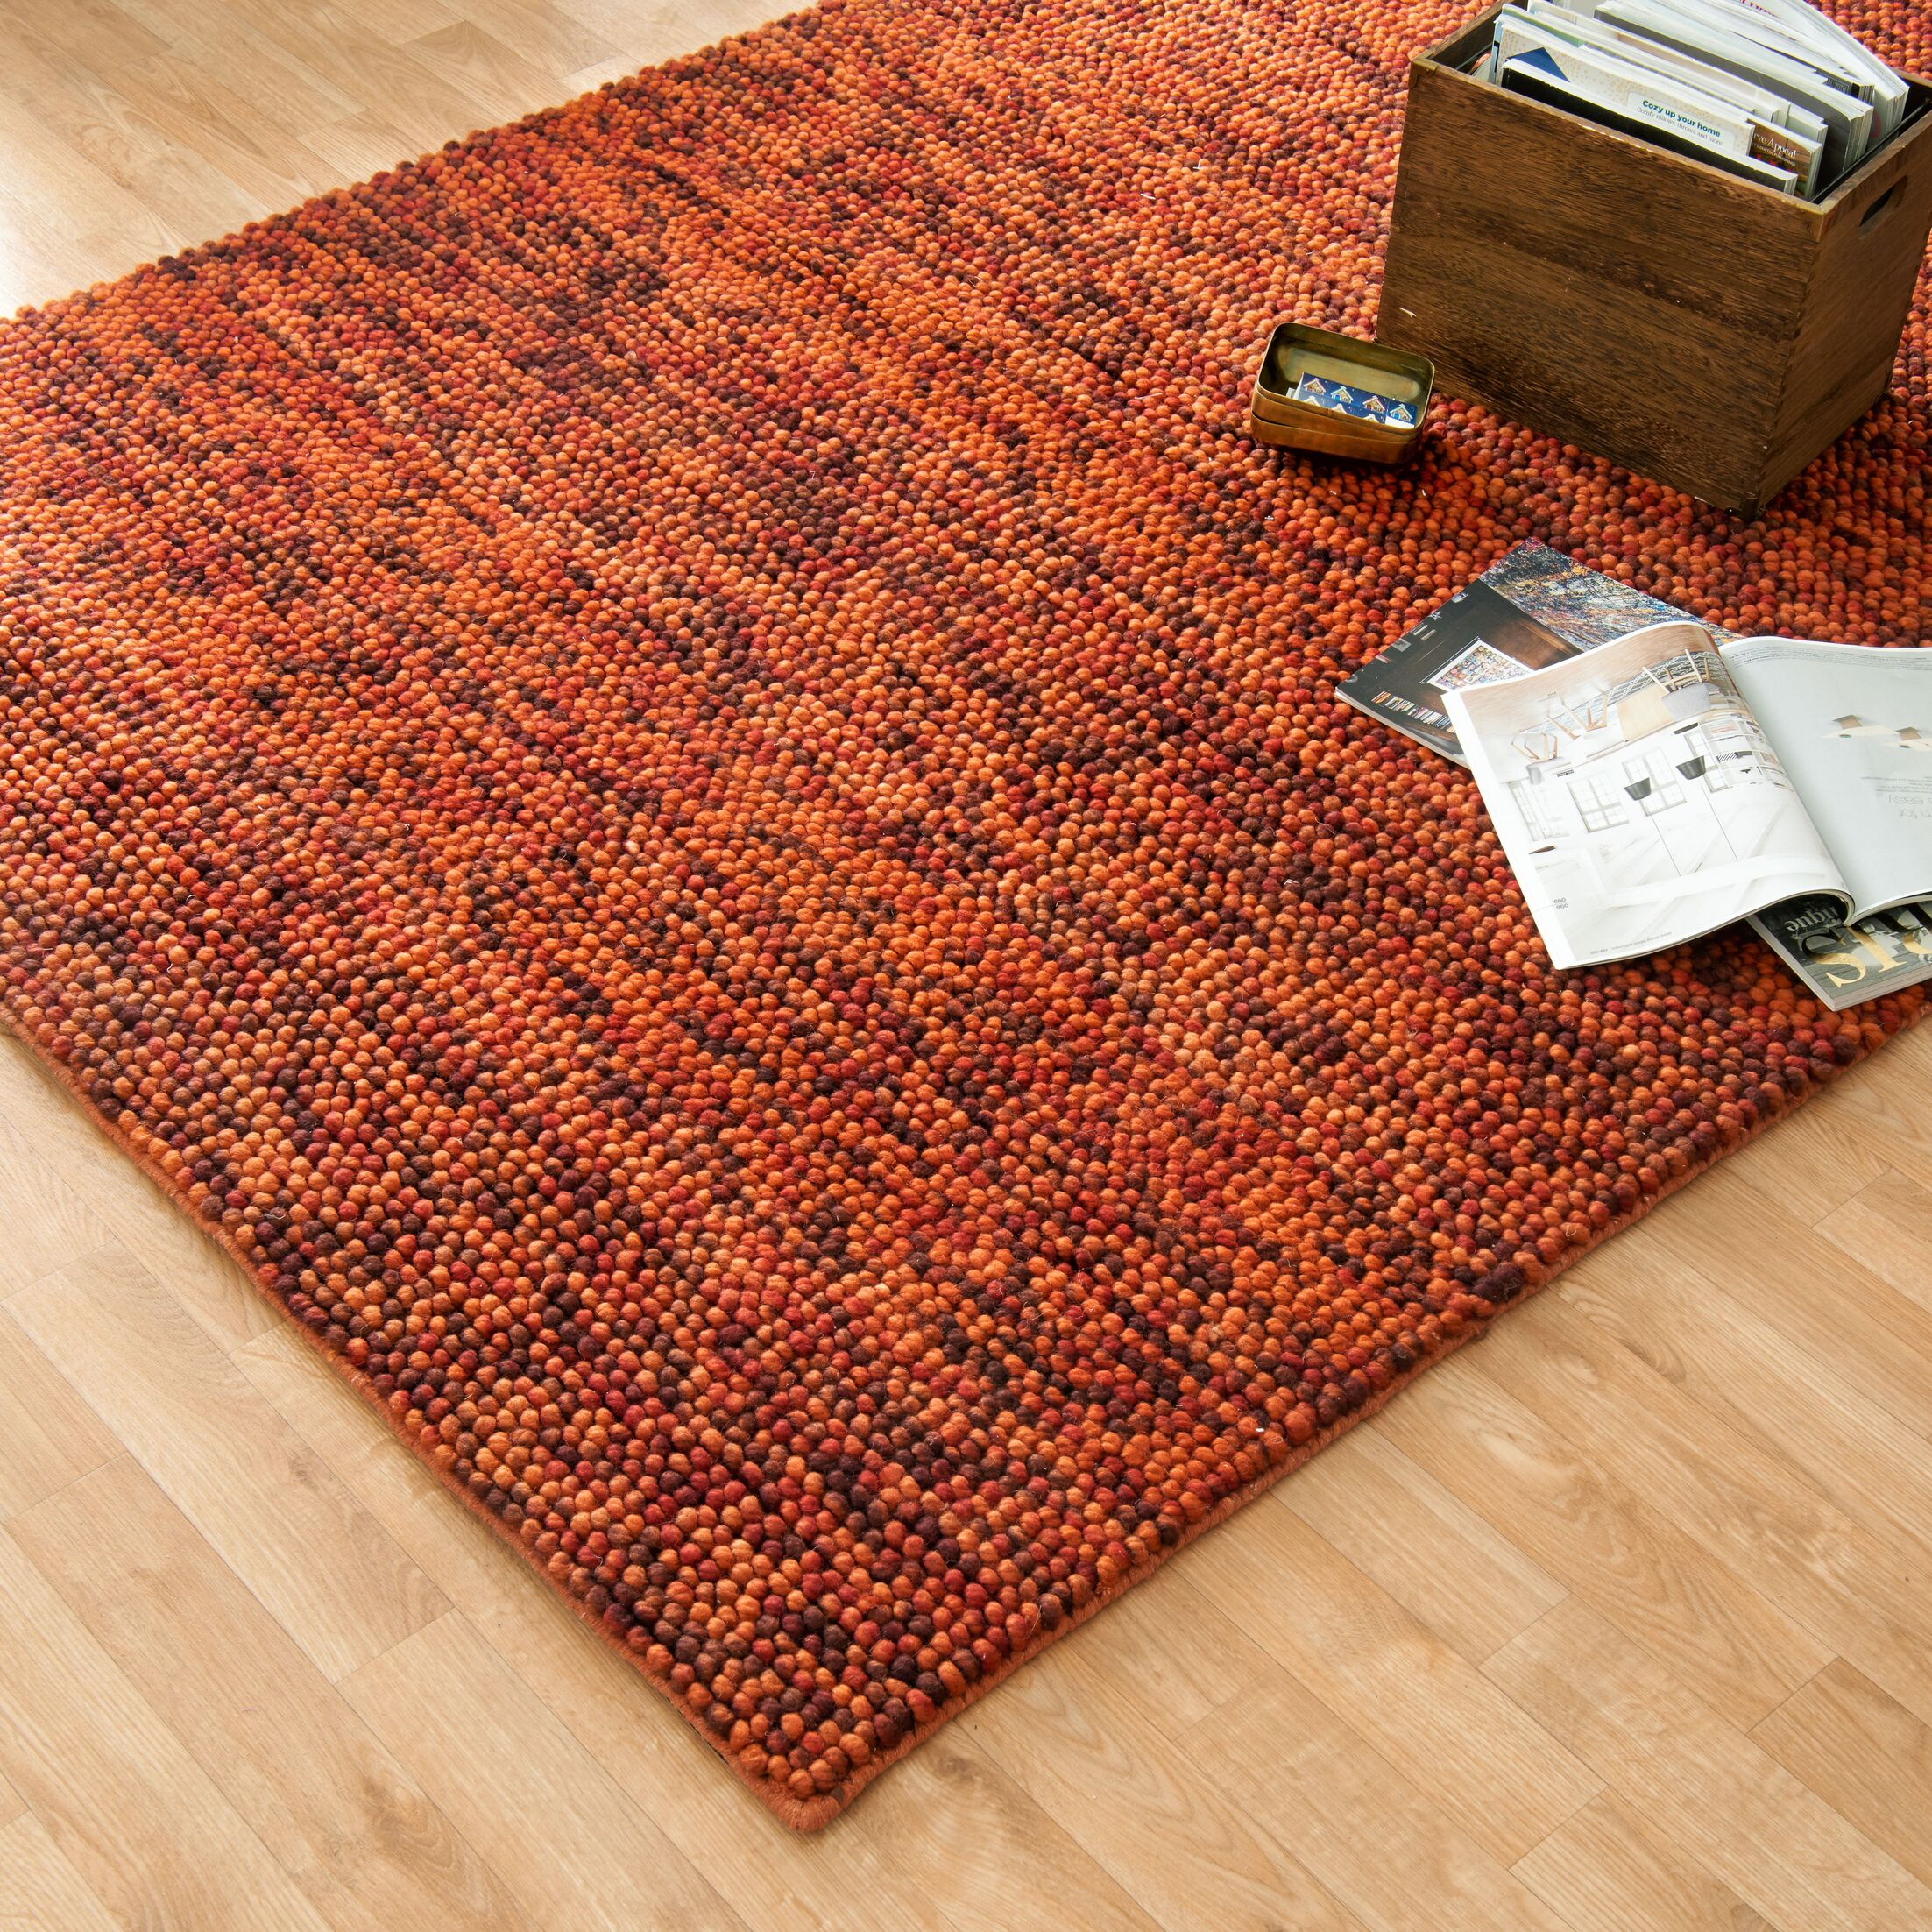 Auld Hand-Woven Rust/Brown Area Rug Rug Size: Rectangle 5' x 7'6